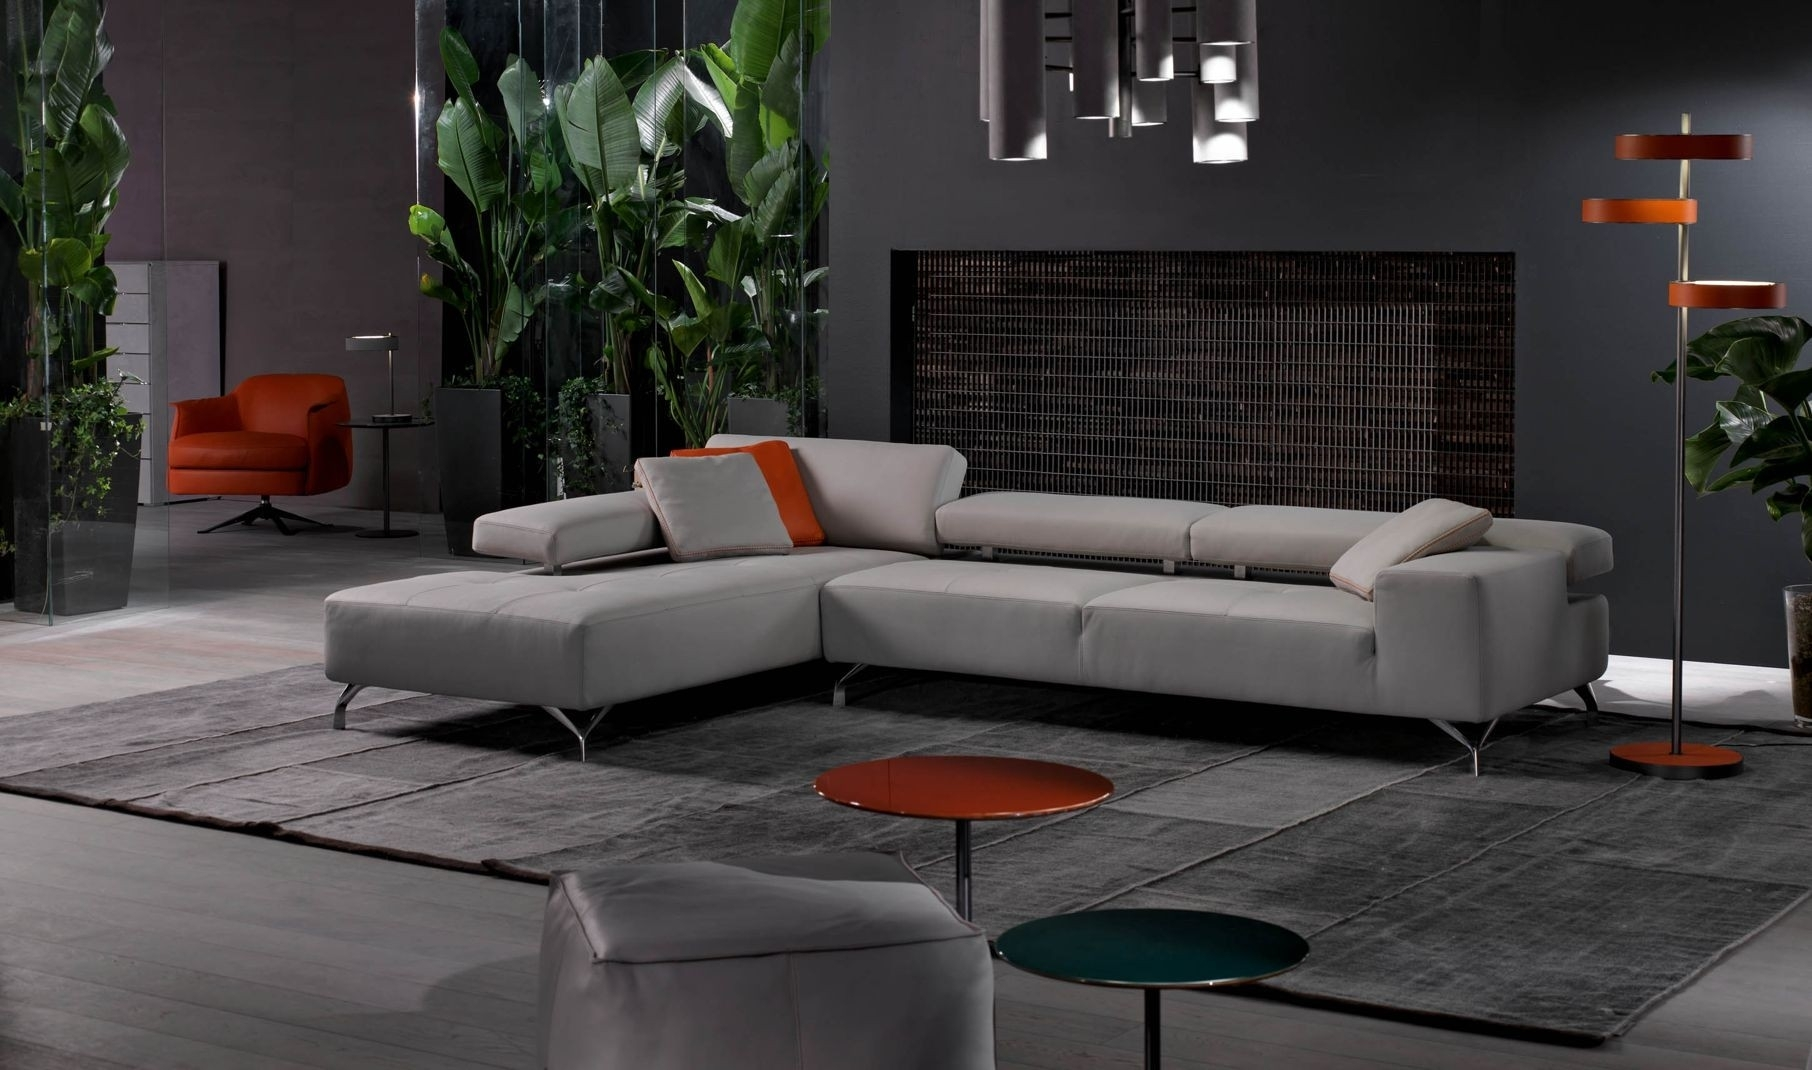 Miami Modern Sectional Sofa | Cierre Imbottiti in Miami Sectional Sofas (Image 1 of 10)